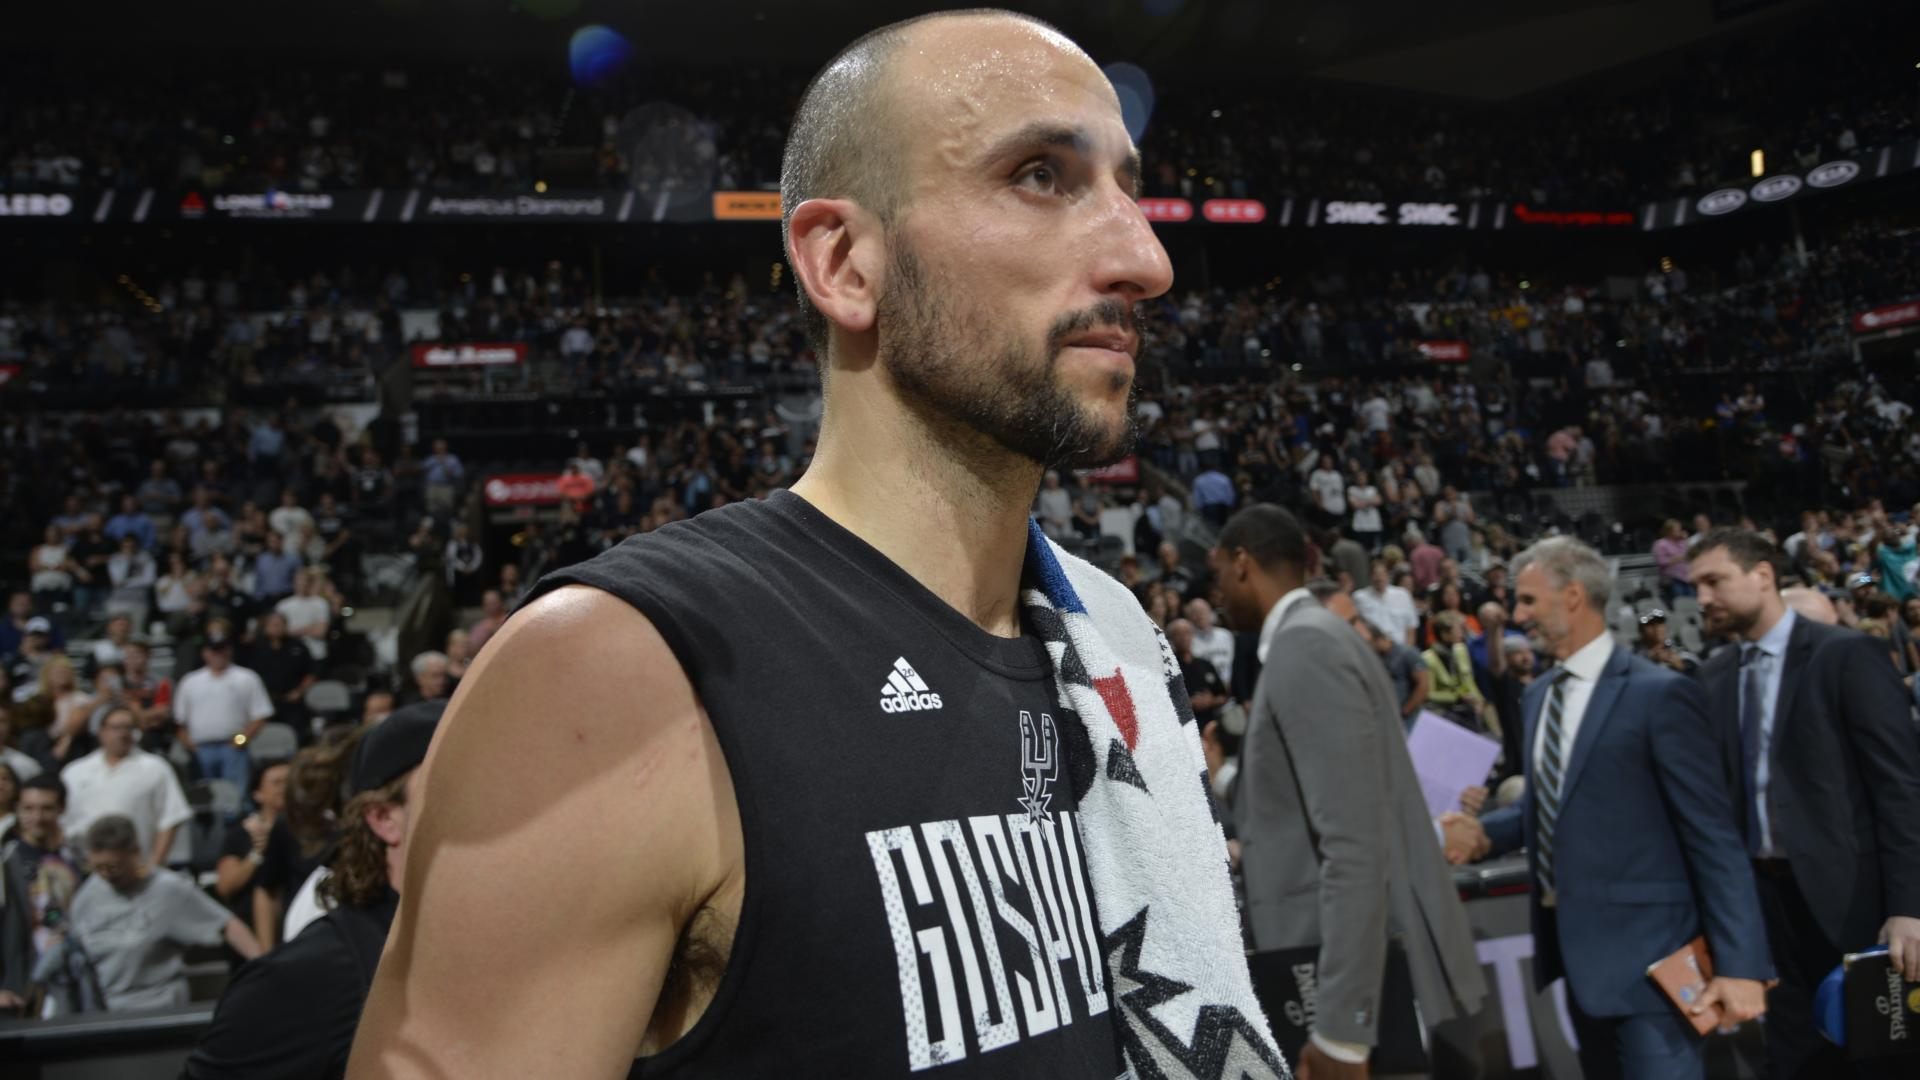 Blogtable: What is the one thing you'll always remember about Manu Ginobili?